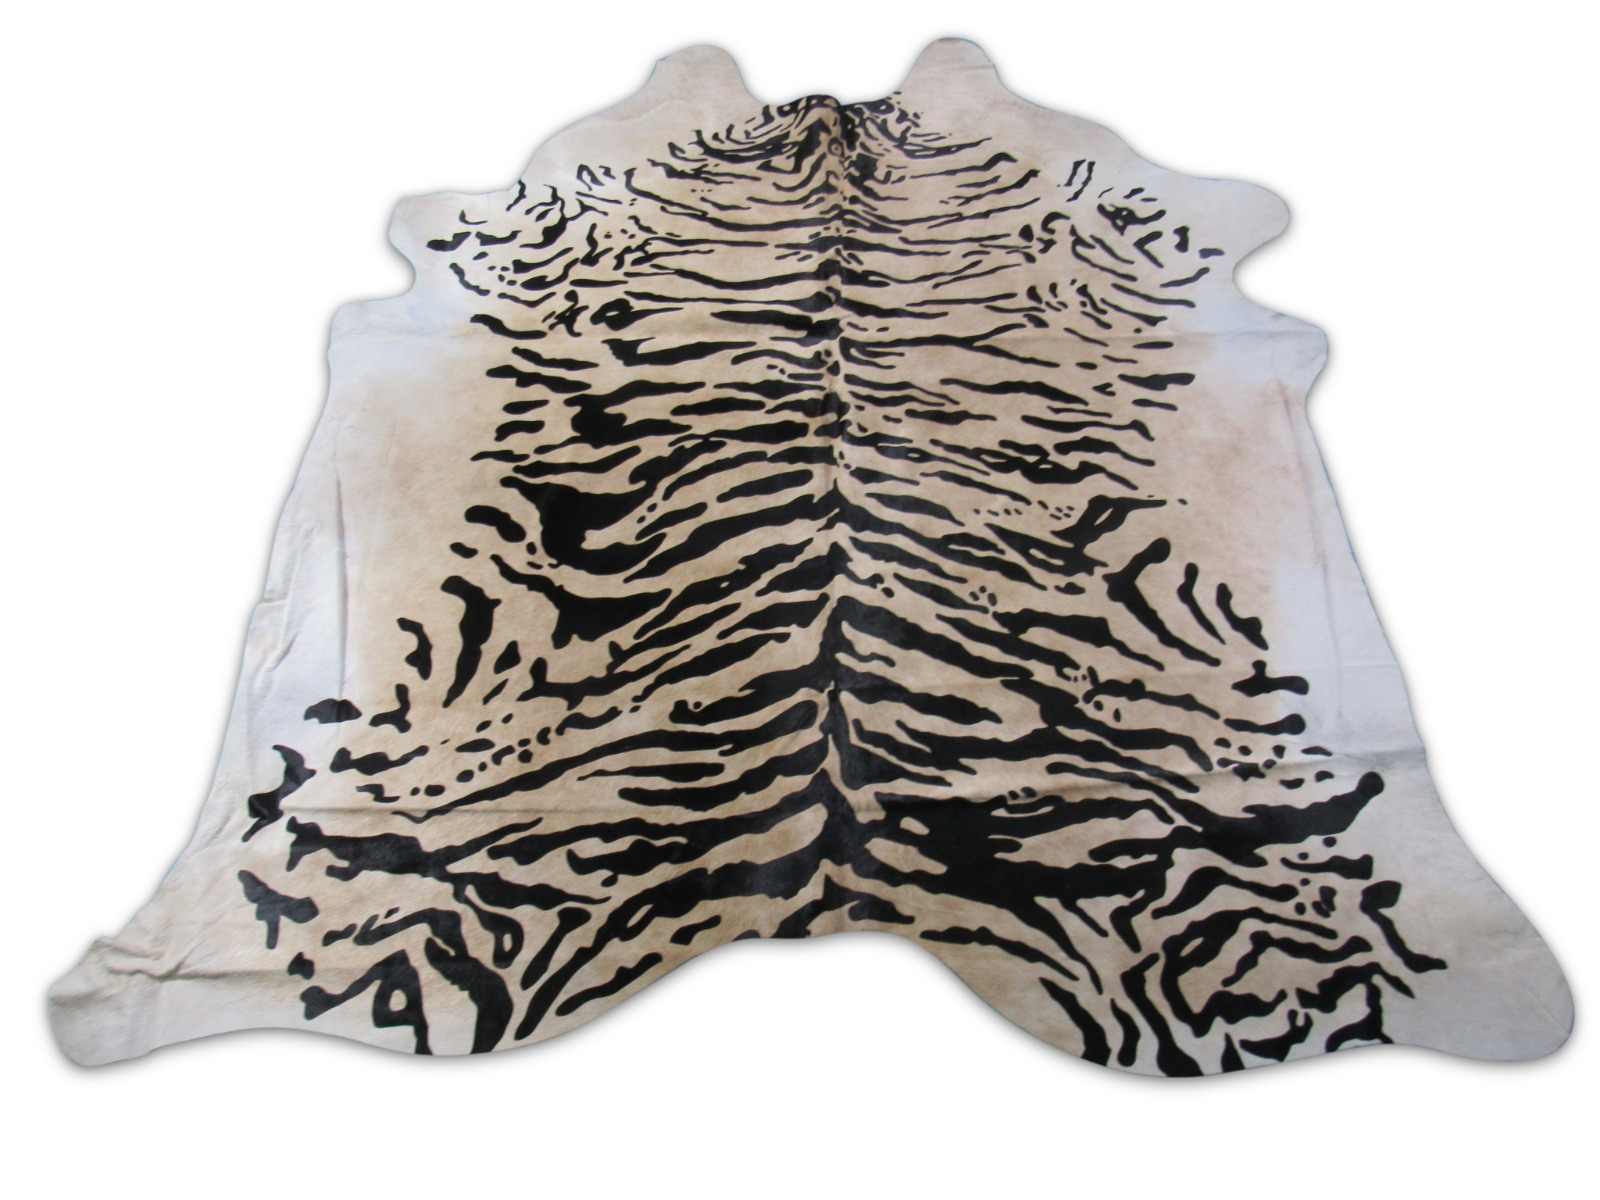 A-1470 Tiger Print Cowhide Rug Size: 7 1/2' X 7'